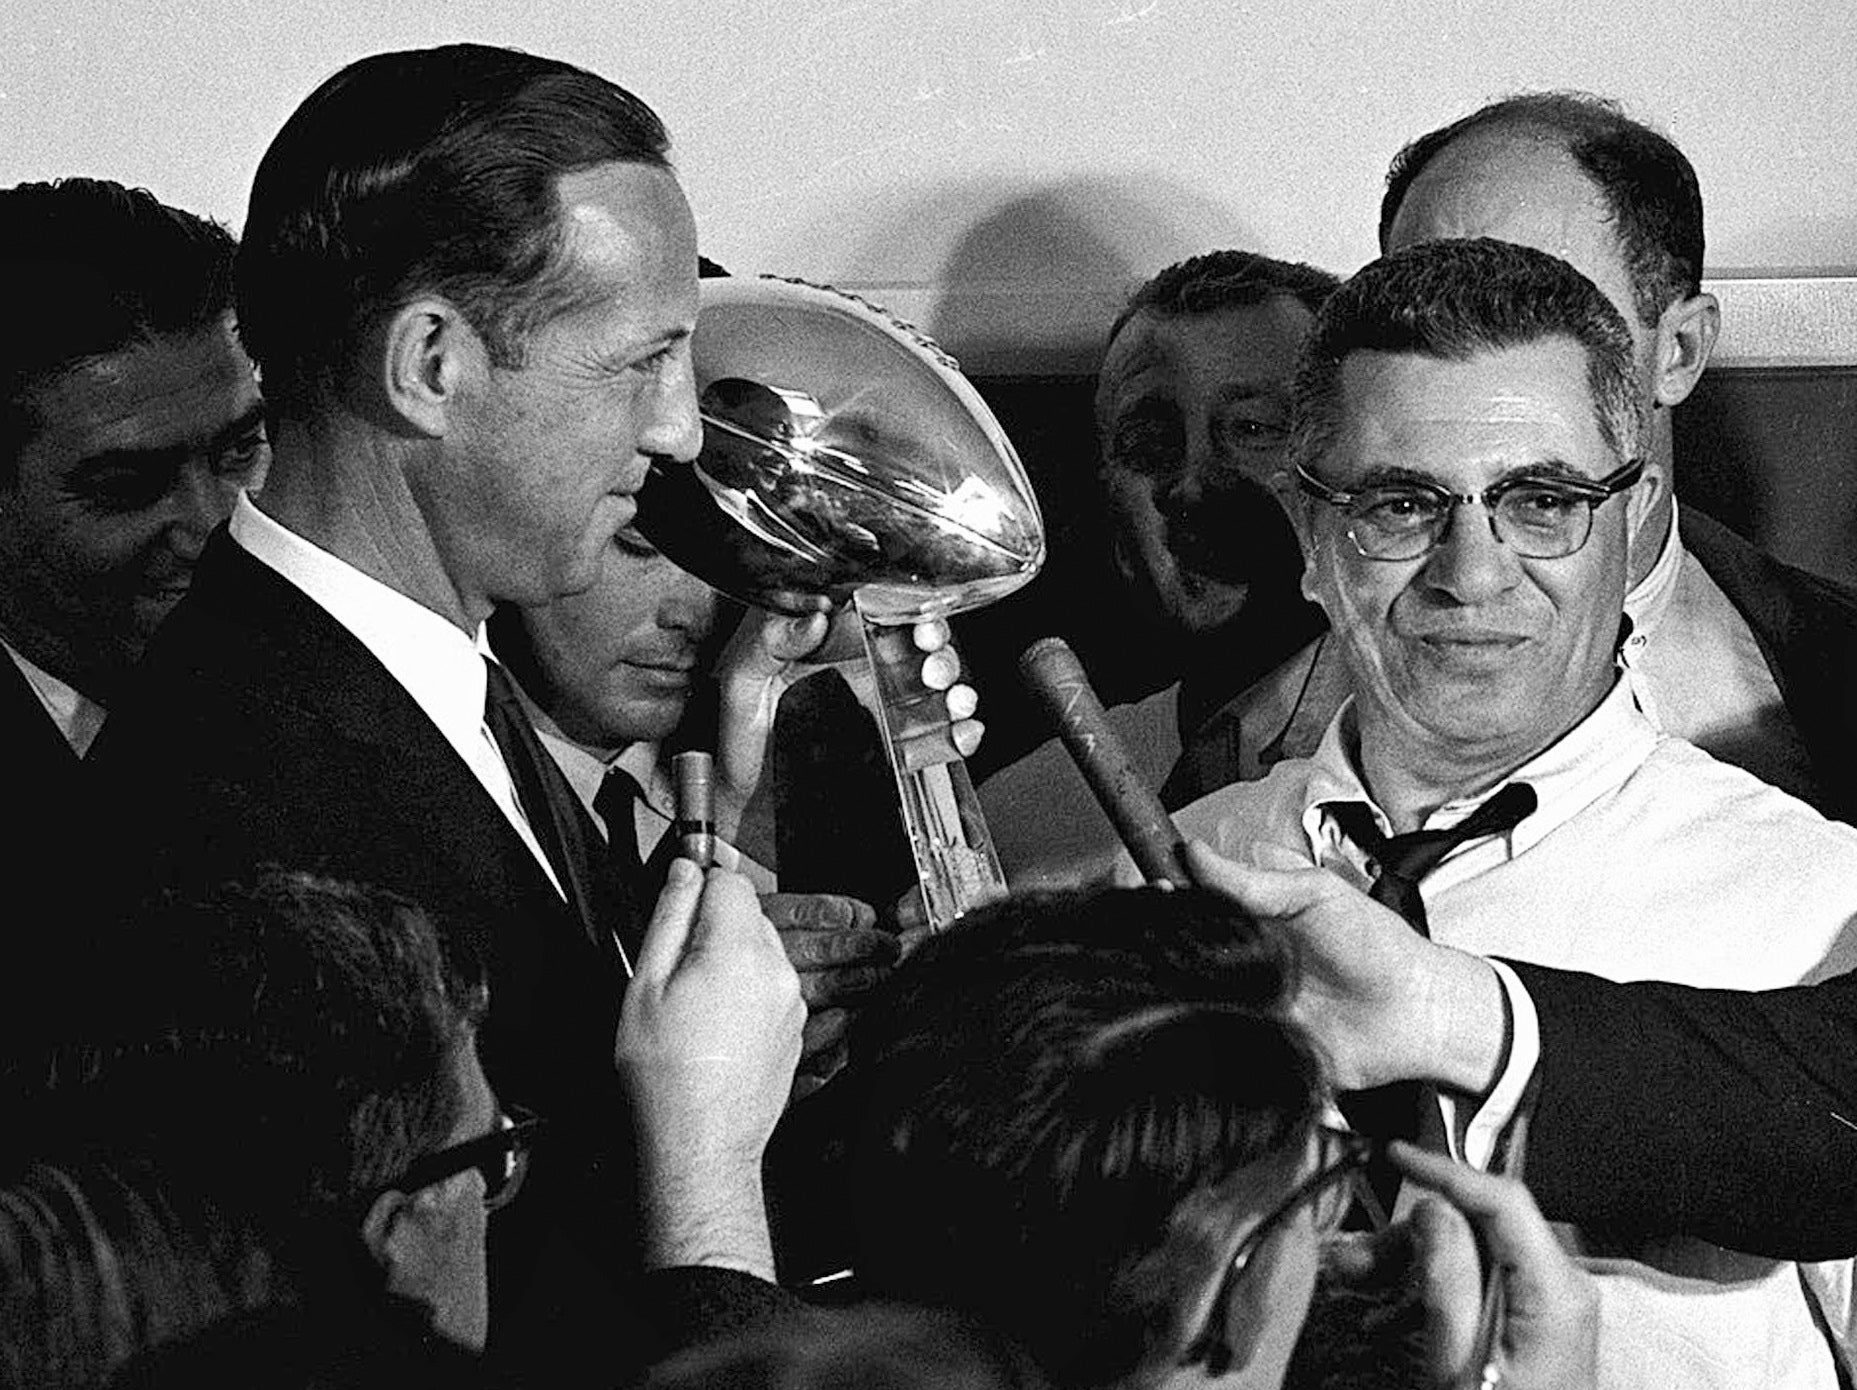 Pete Rozelle, not Al Davis, became the first commissioner of the merged leagues. He would preside over the first Super Bowl, won by Vince Lombardi's Packers.